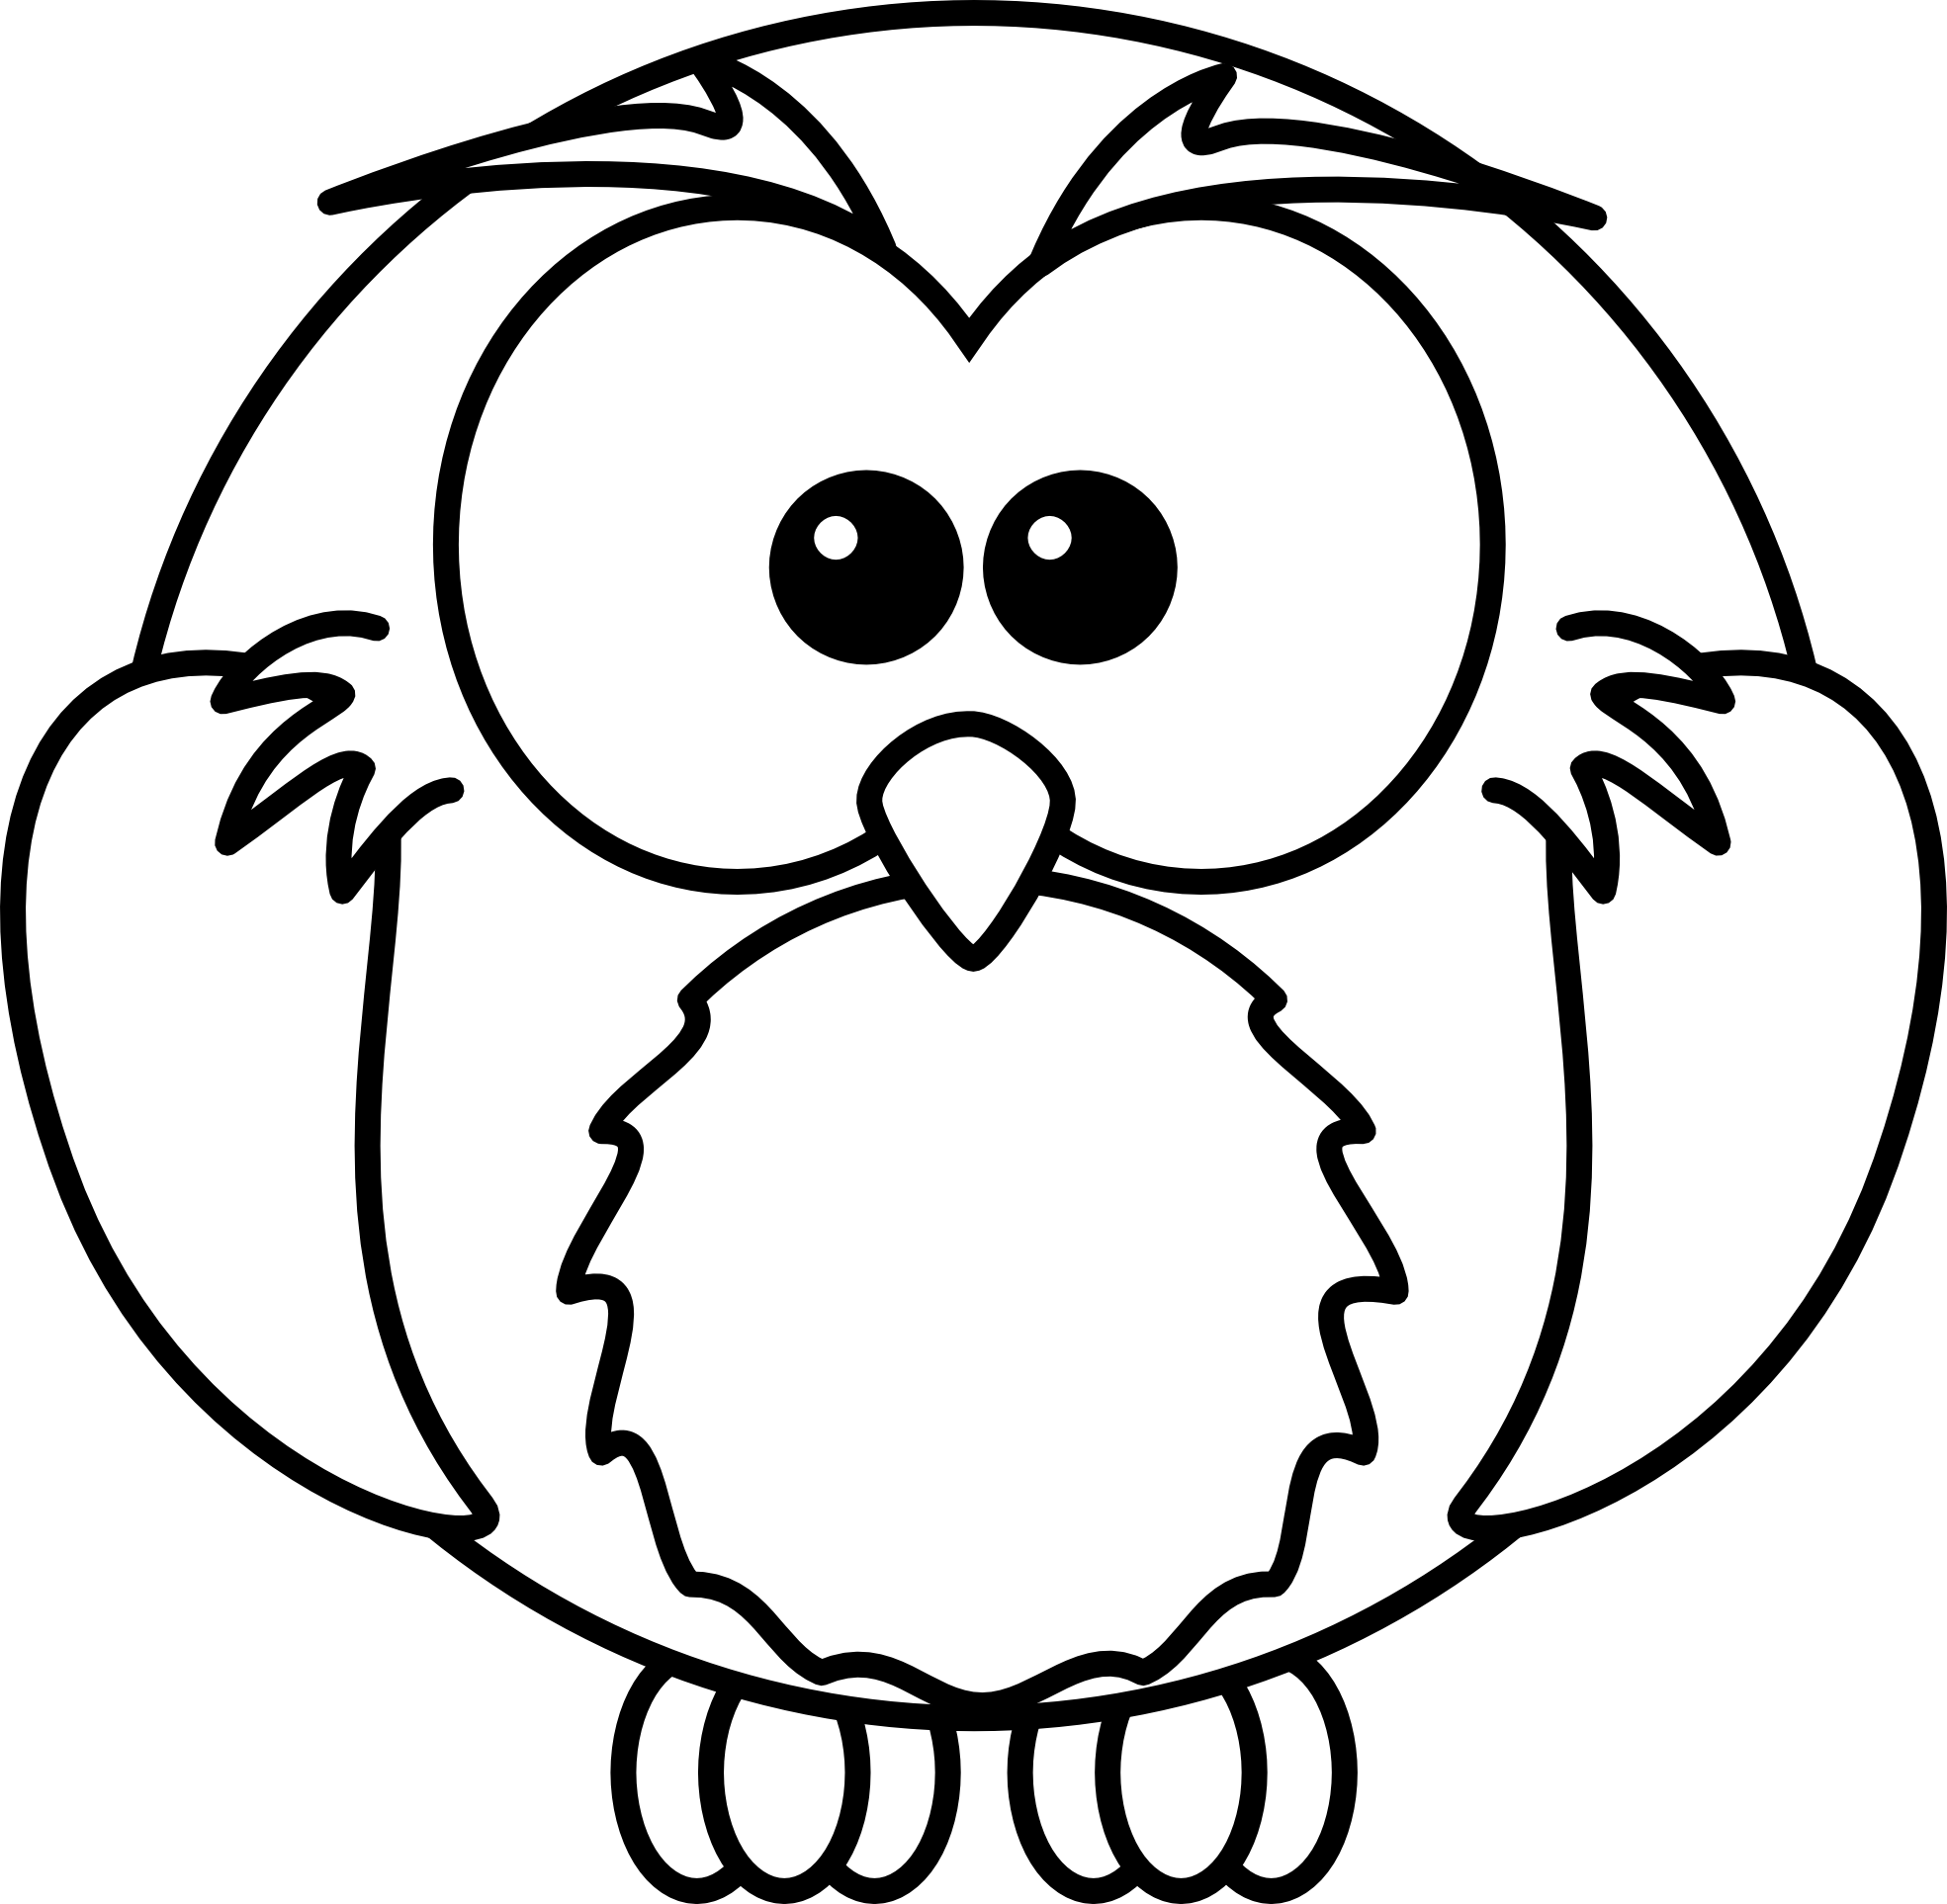 baby-owl-clipart-black-and-white-cartoon-clip-art-black-and-white-1    Baby Owl Clipart Black And White